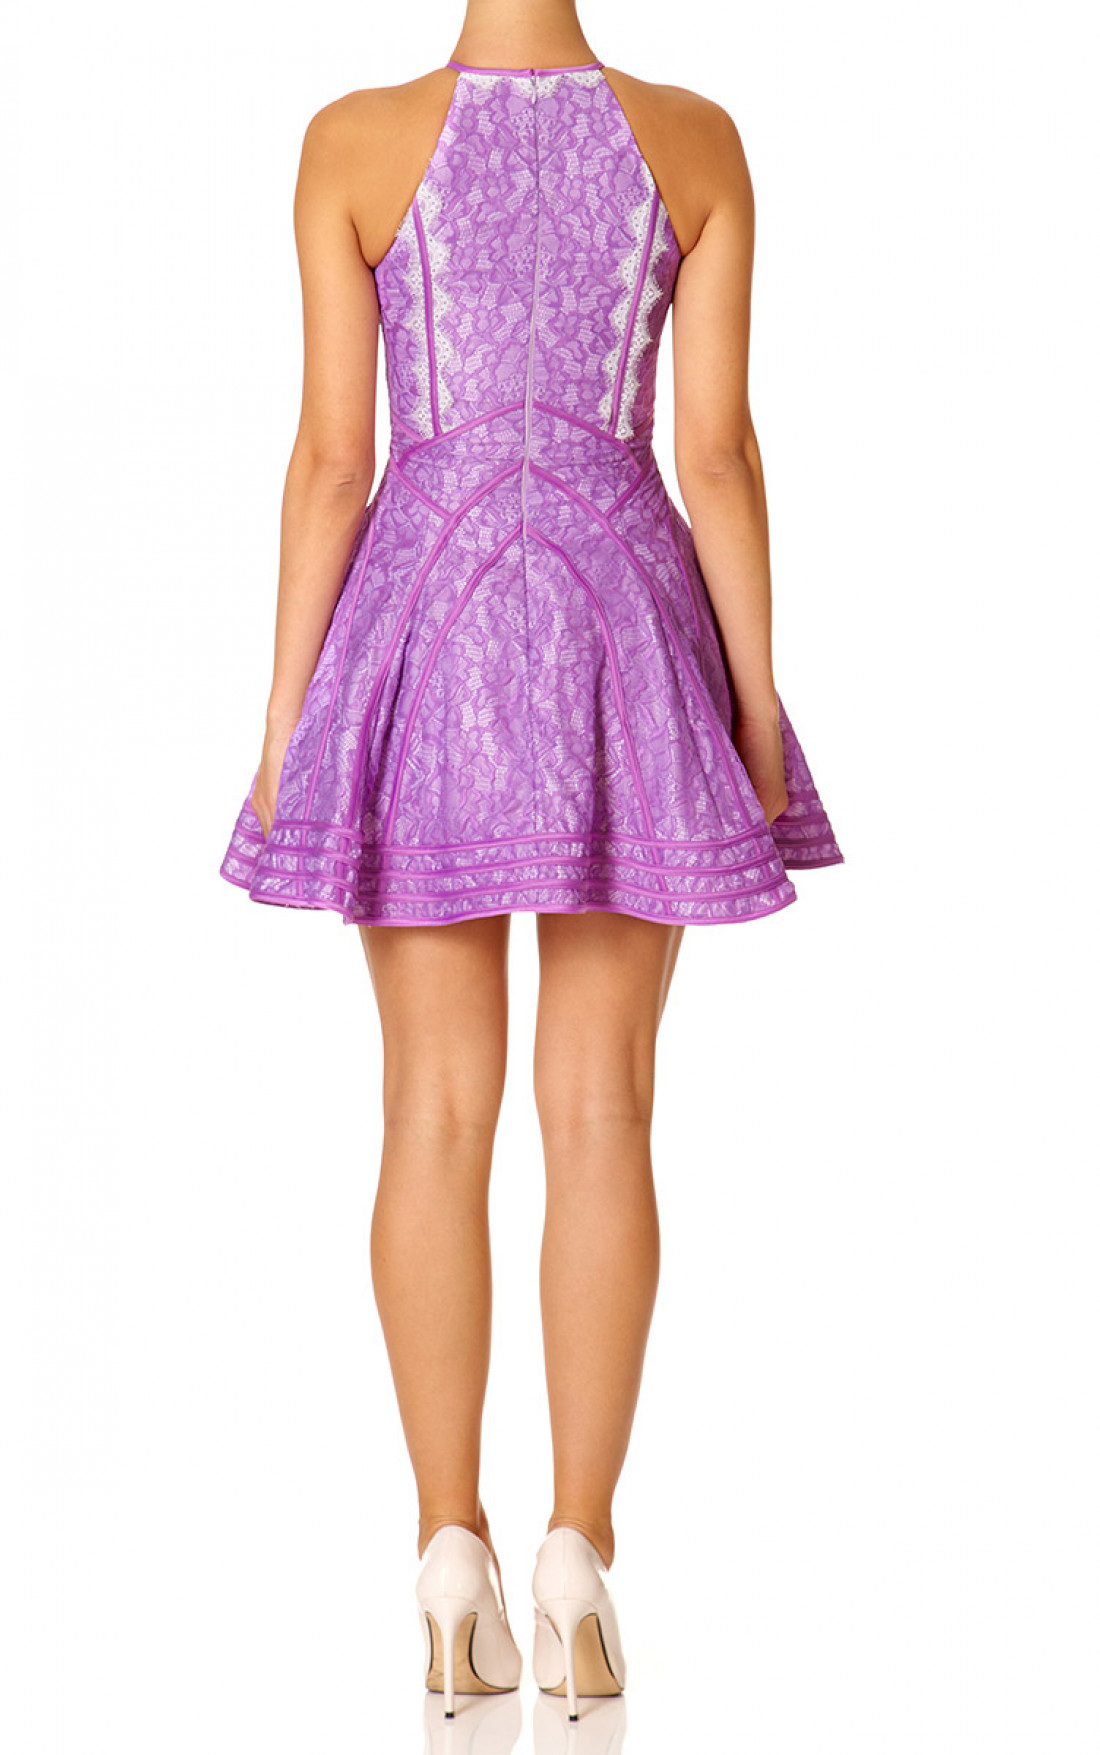 Forever Unique - Daphne Lilac Skater Dress (SR0150)